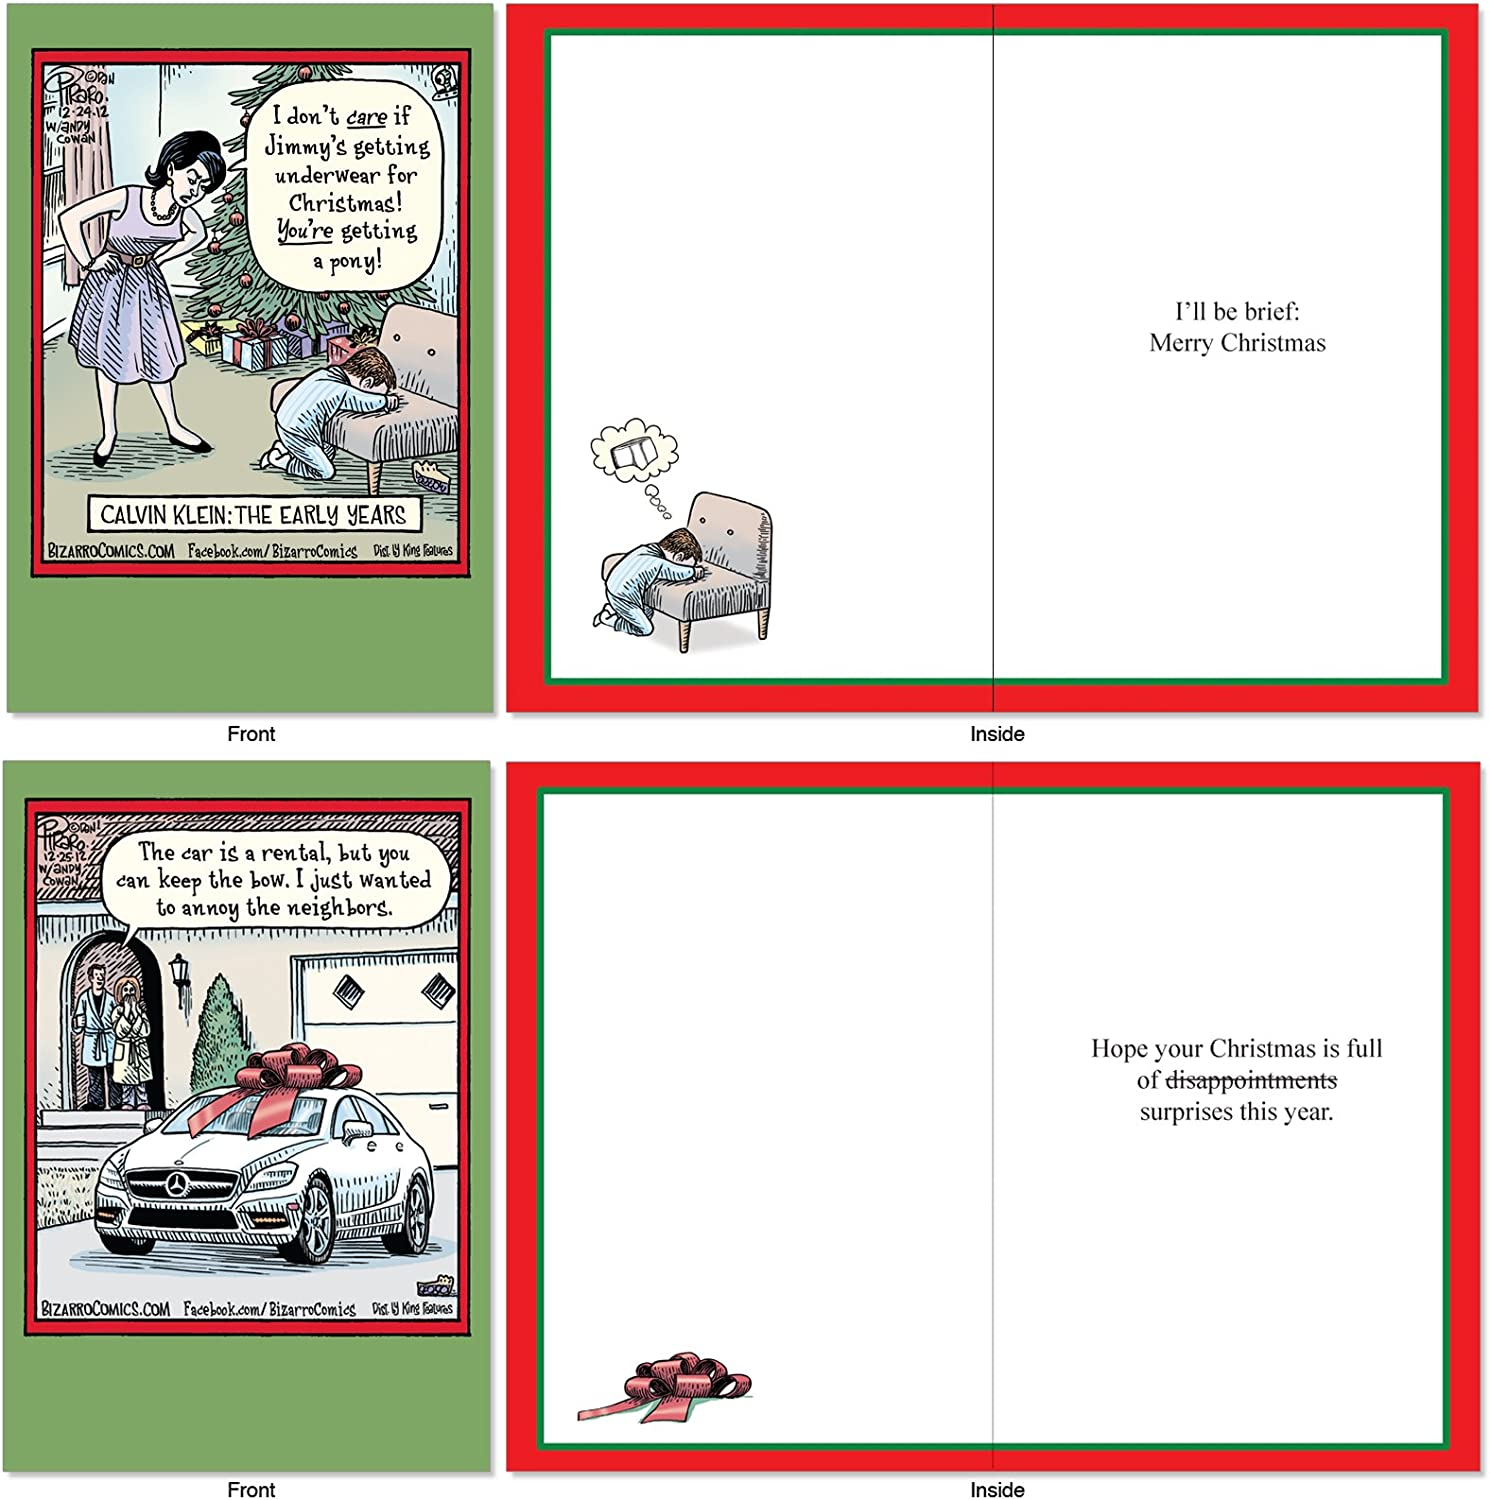 Boxed Cartoon Holiday Cards for Xmas A1256 Bizarro by Piraro Funny Assorted NobleWorks 10 Comic Merry Christmas Cards with Envelopes